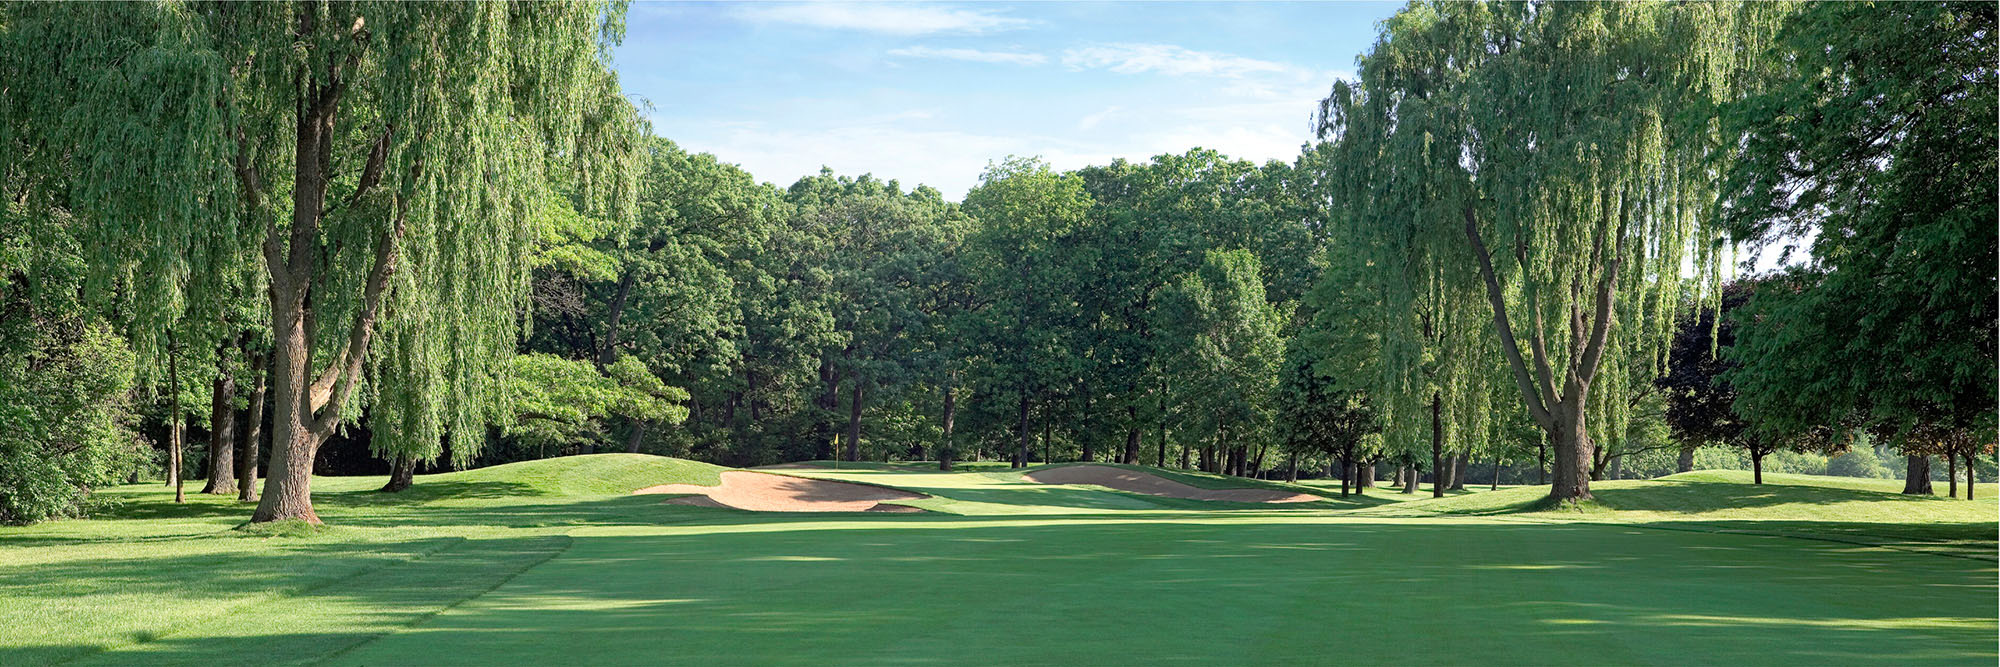 Golf Course Image - Knollwood No. 13